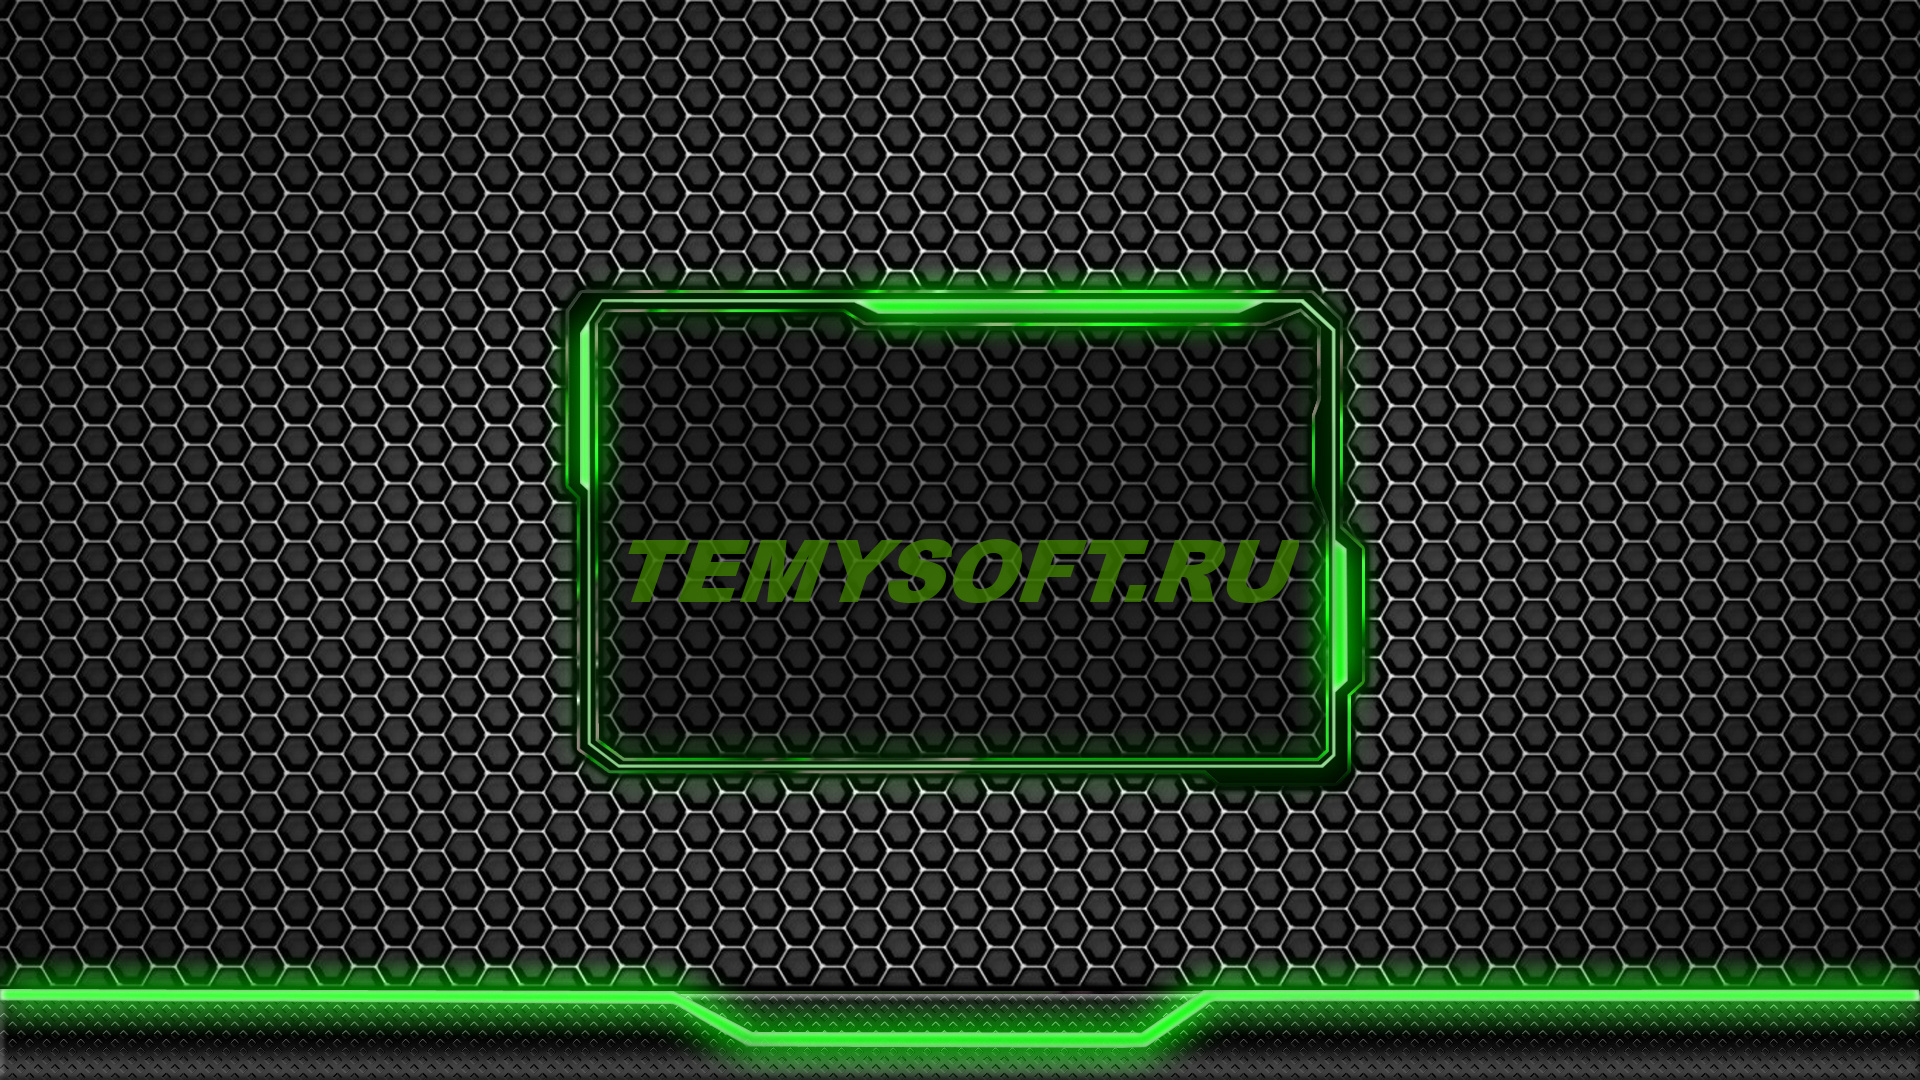 Log on screen NEON LIGHT by ostx 7 colors by POWEREDBYOSTX